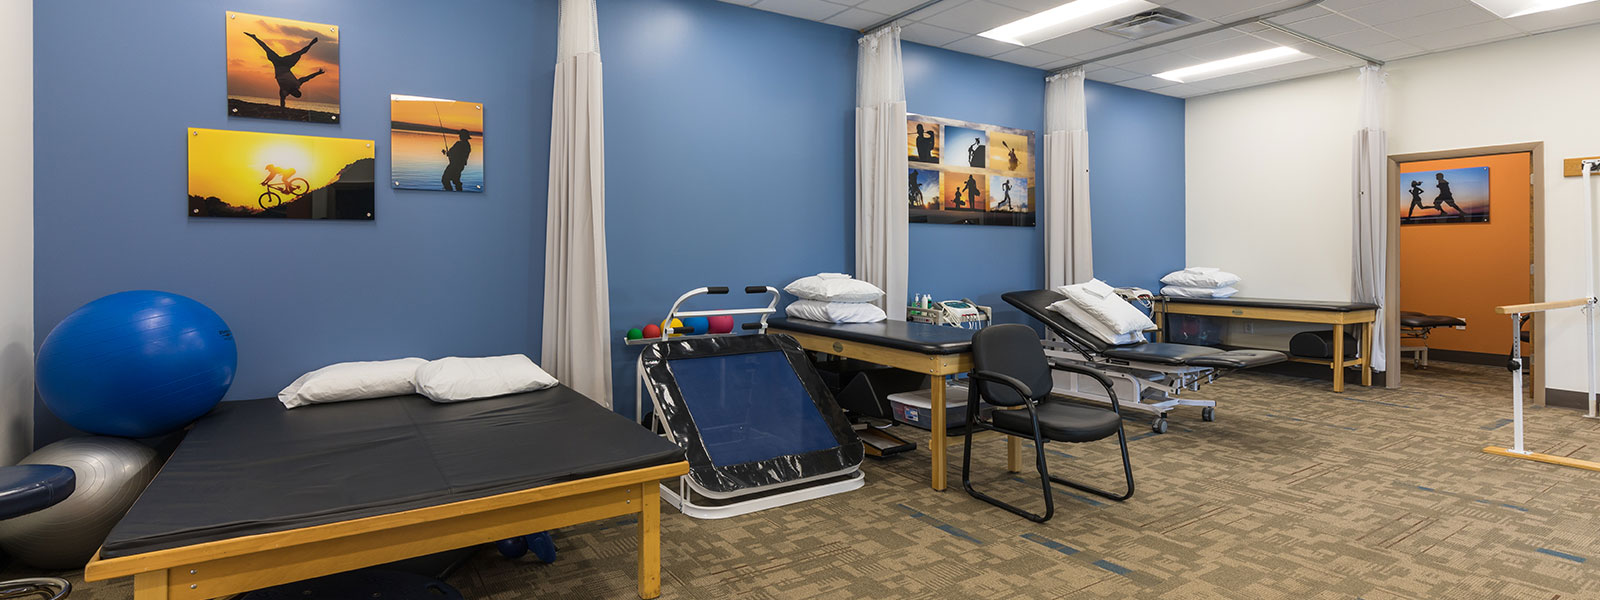 Stansbury Park Physical Therapy